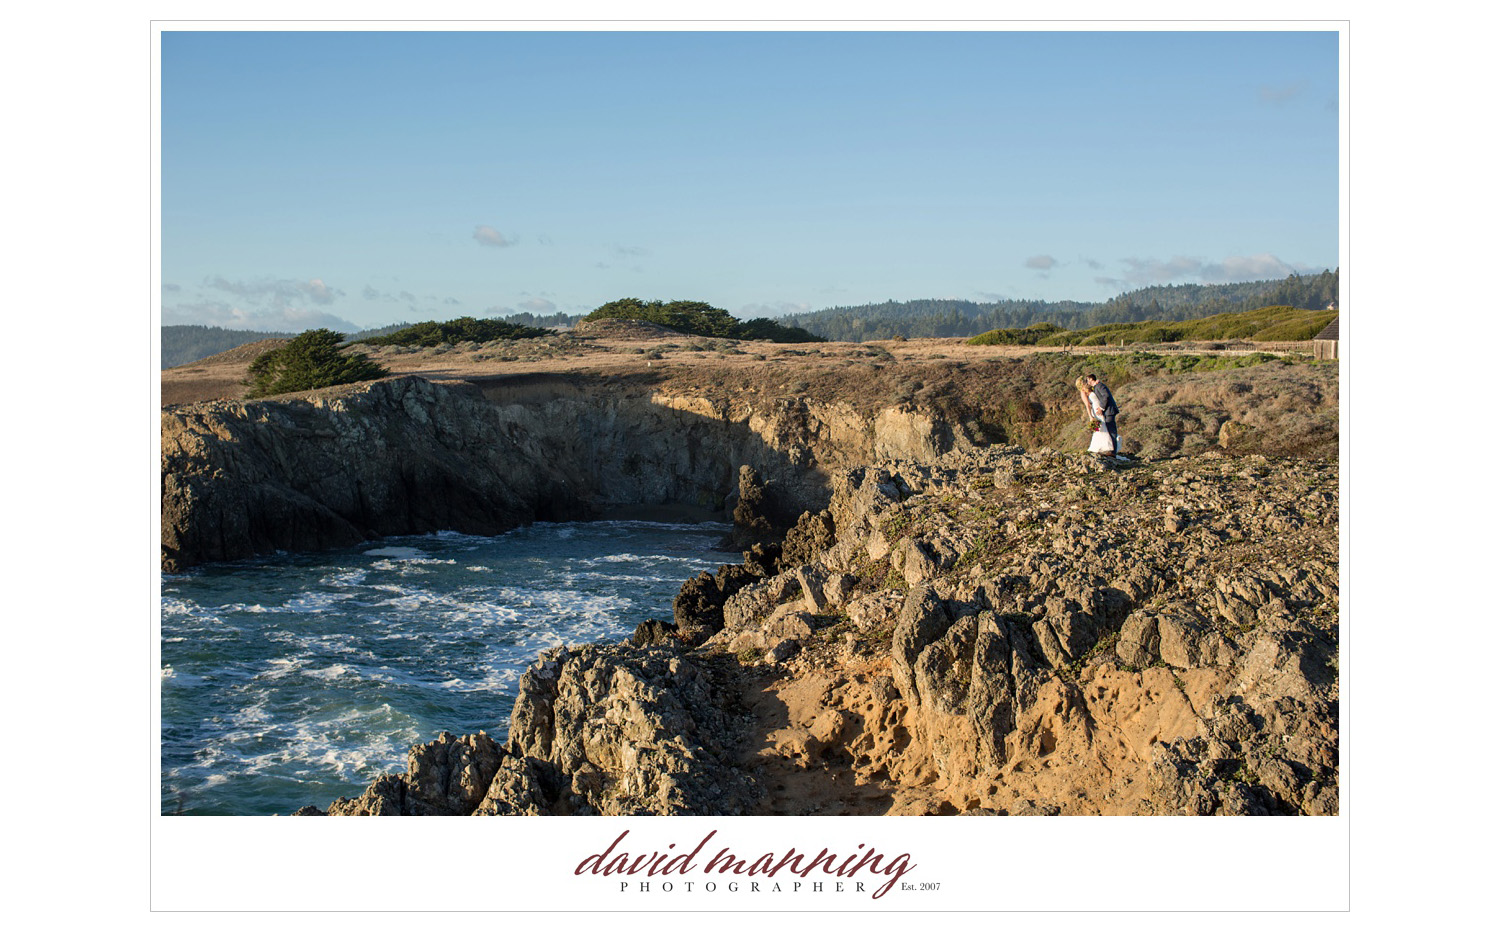 Sea-Ranch-Sonoma-Destination-Wedding-David-Manning-Photographers-141101-0037.jpg